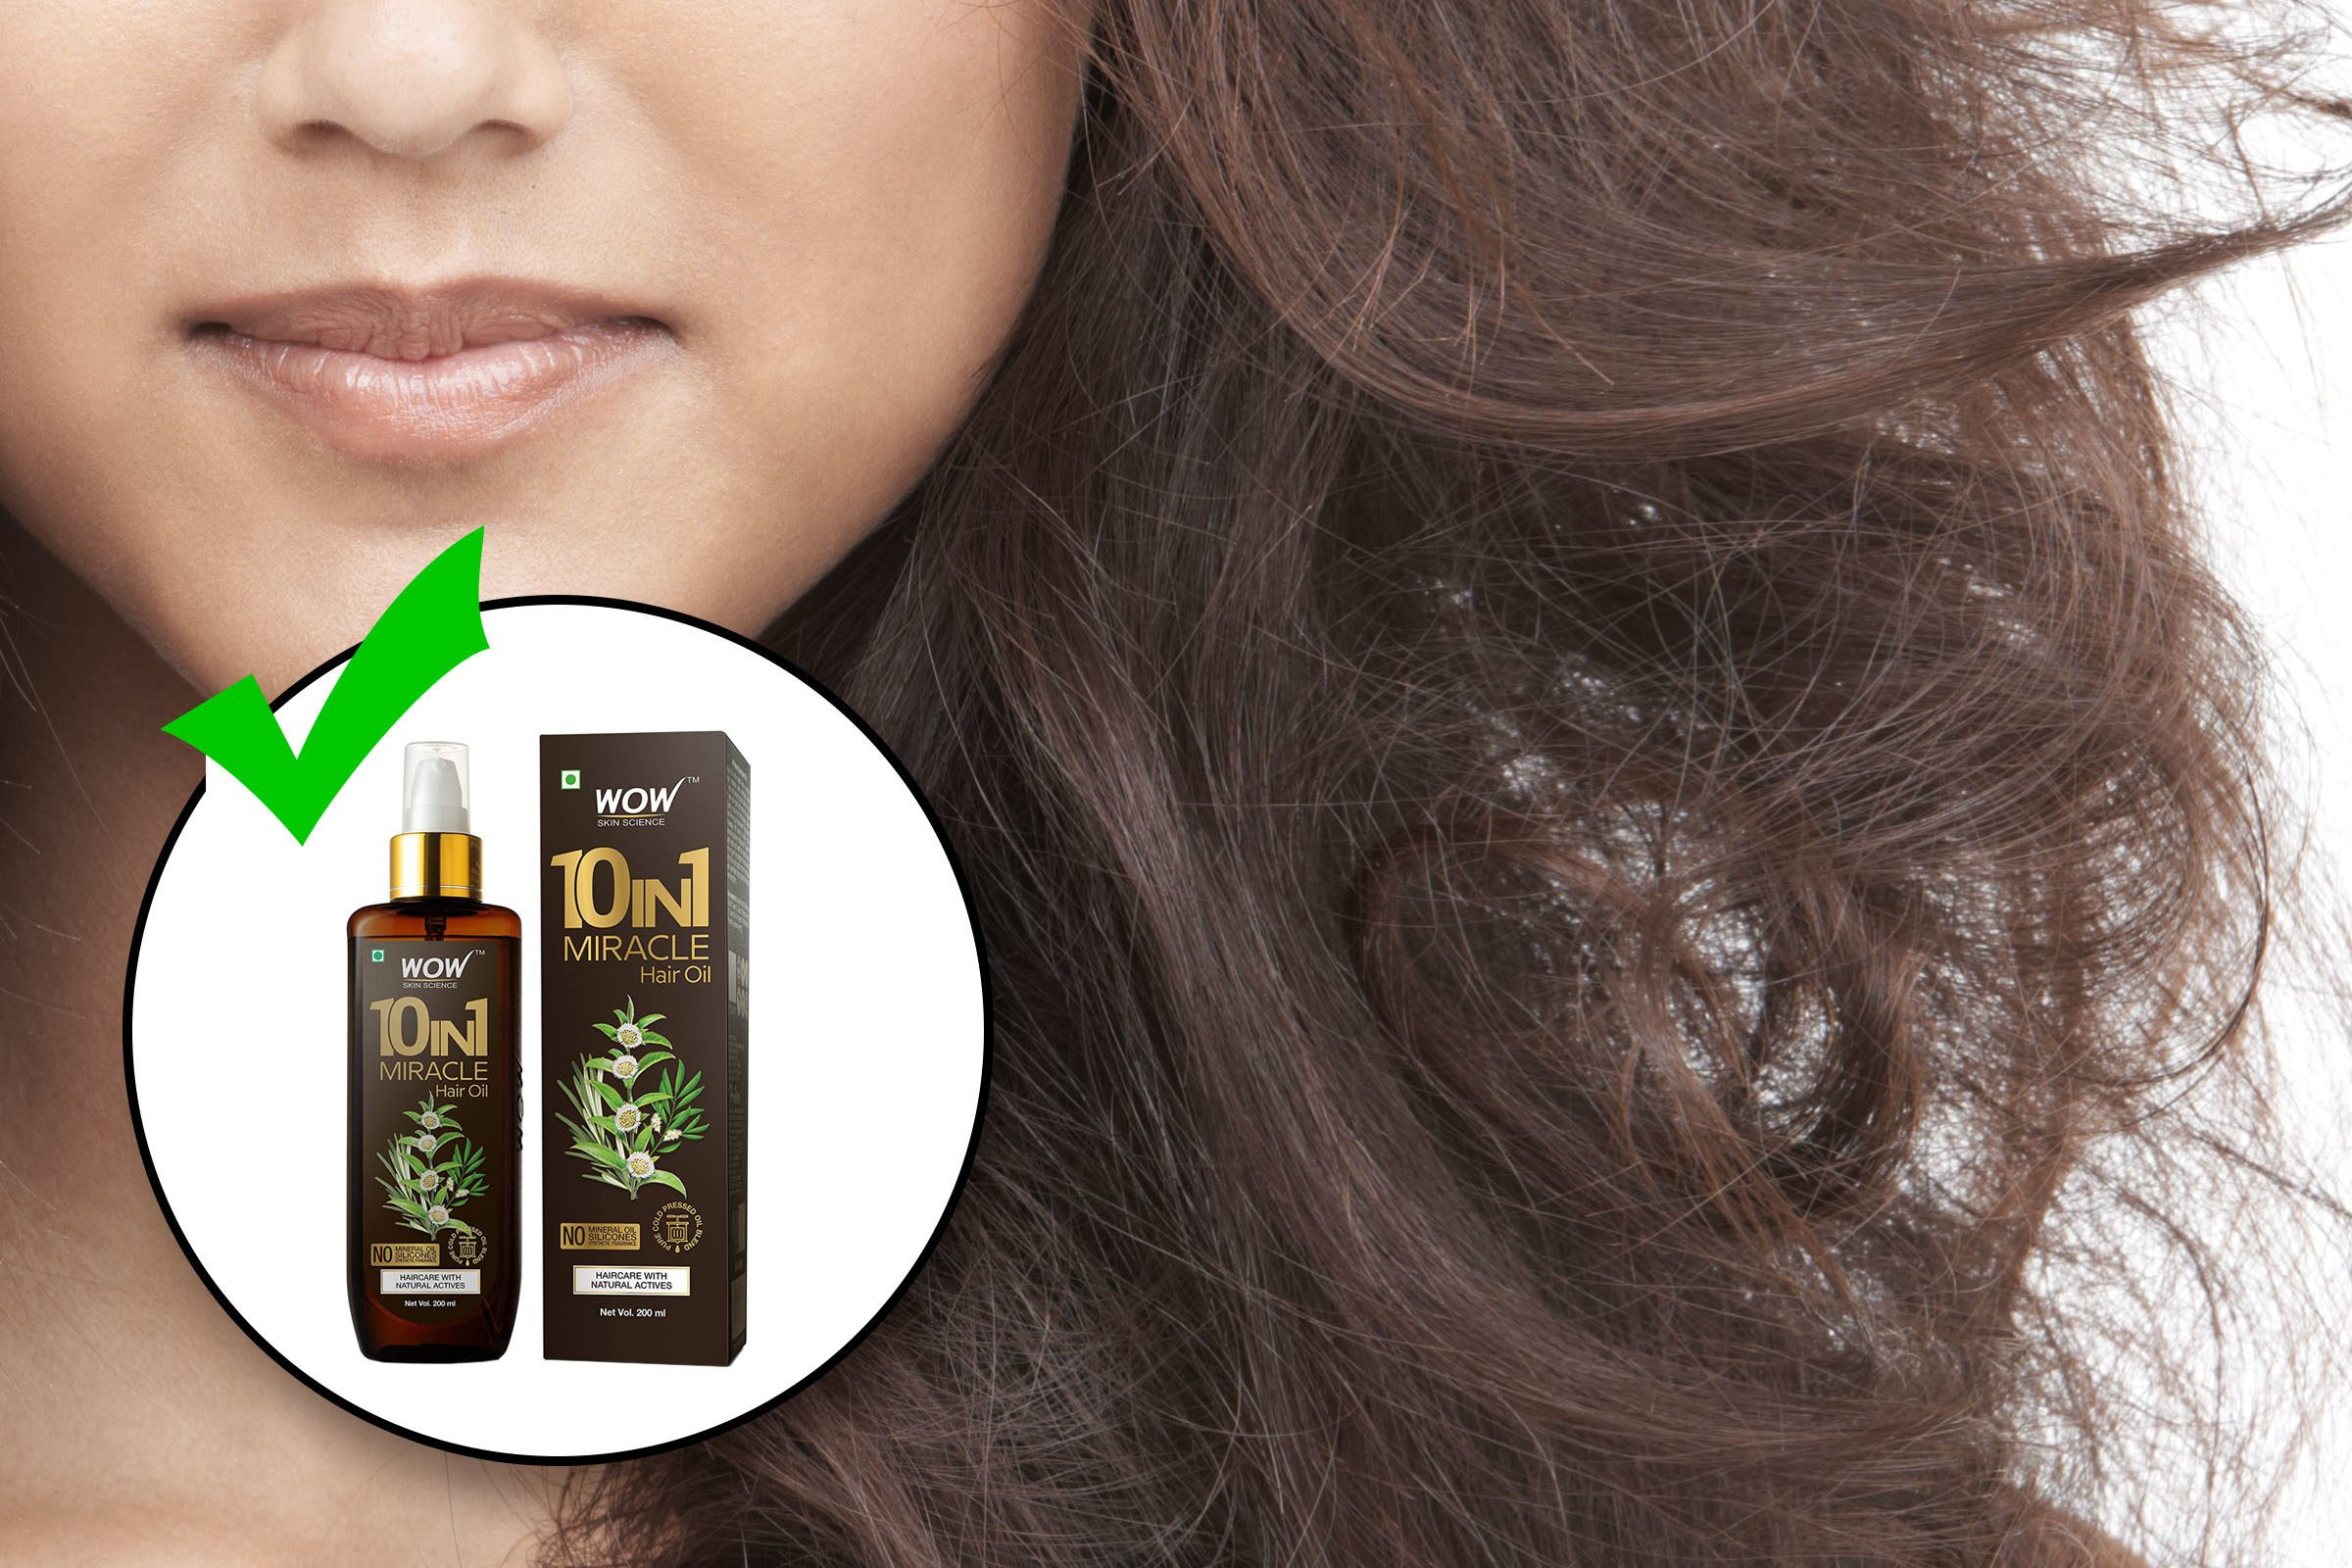 womans hair flowing with inset of hair moisture product